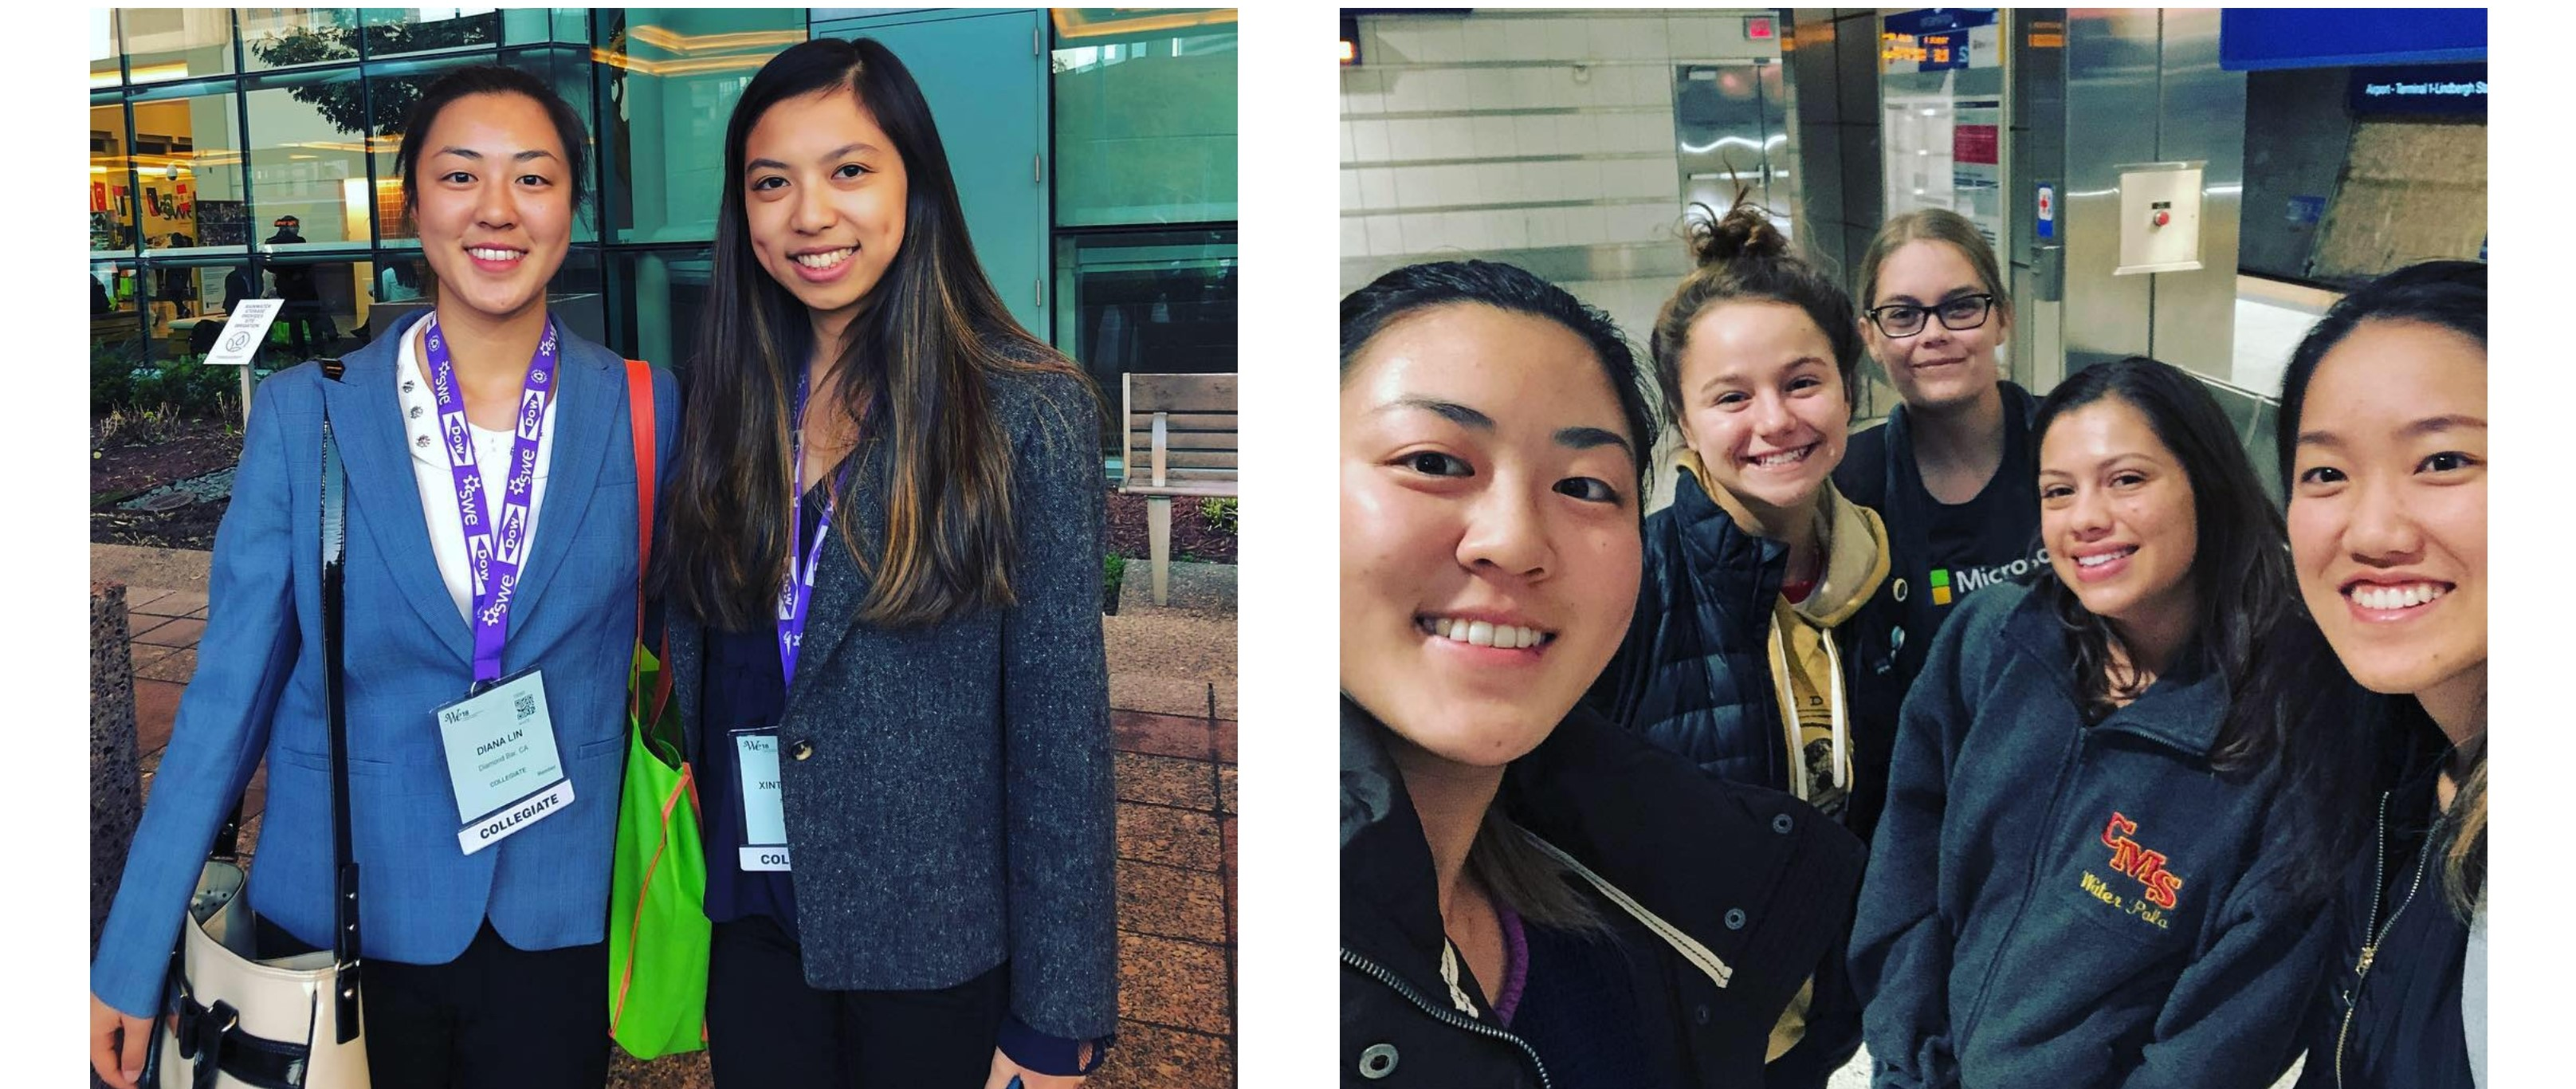 The left photo is of two freshmen posing outside of the convention center. The right photo is of five of our members taking a photo in the airport.